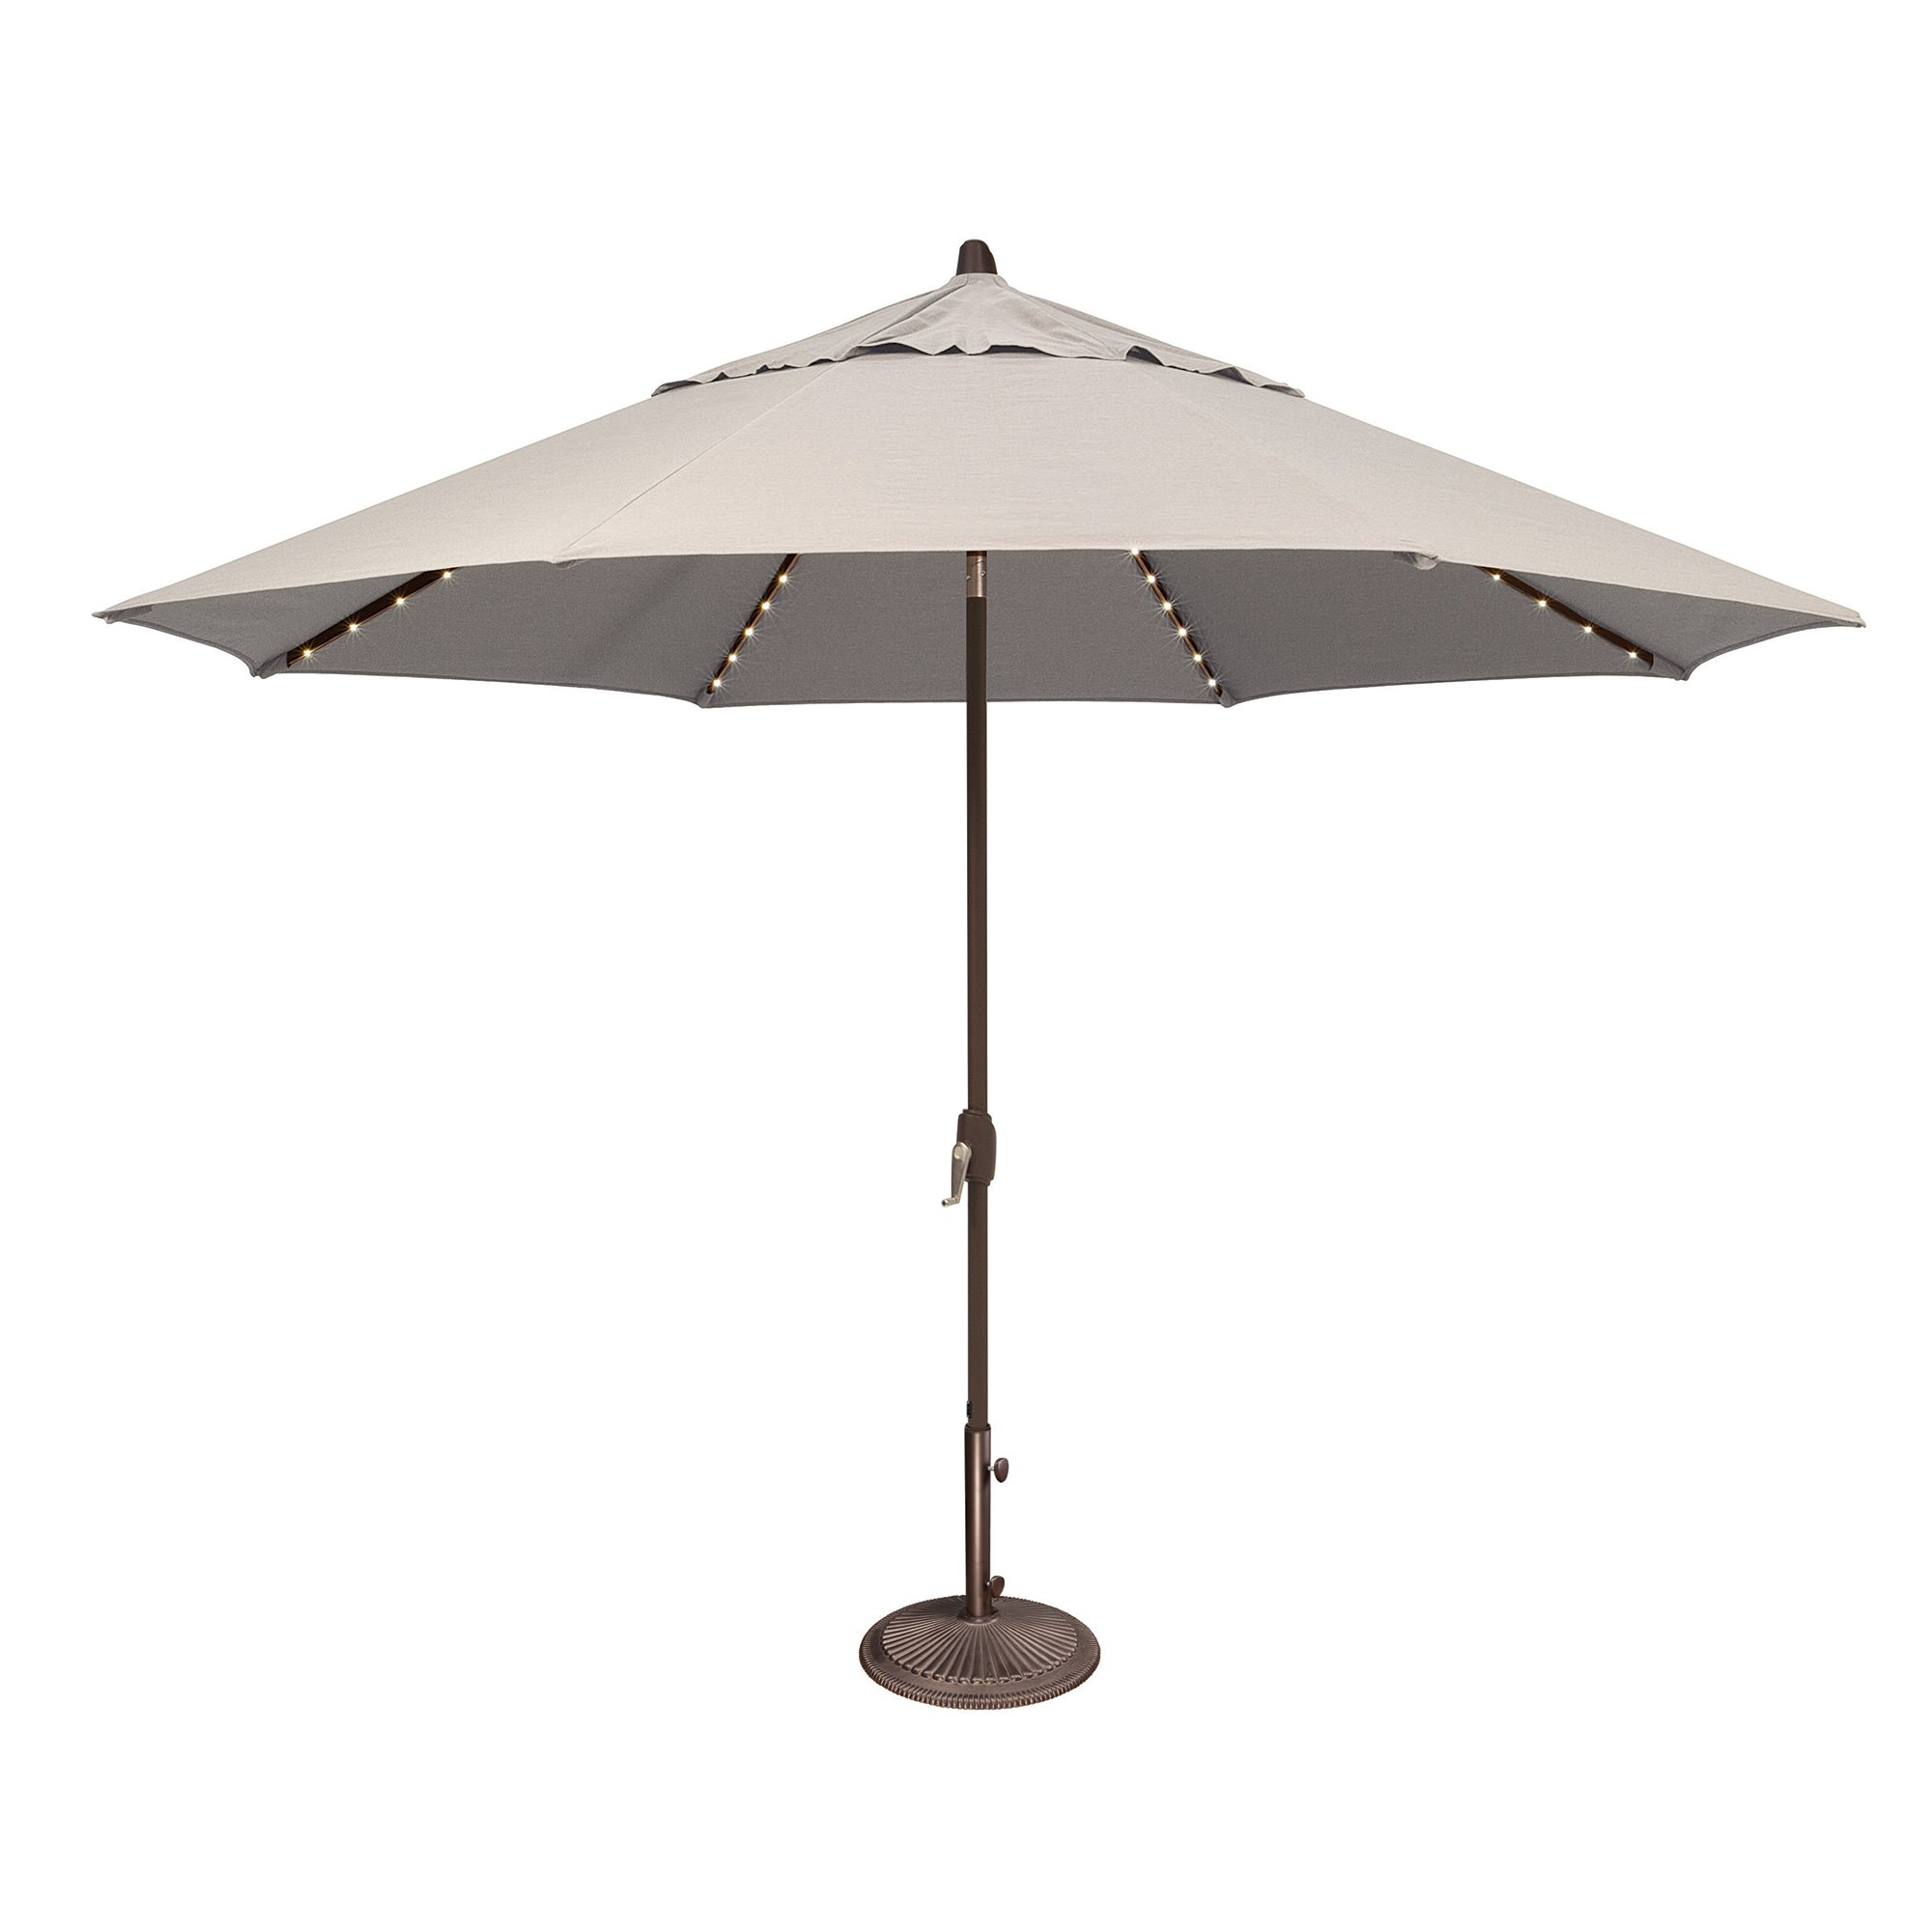 Lanai Market Umbrellas Within 2019 Lanai Pro 11' Octagon Sunbrella Market Umbrella With Star Lights (View 3 of 20)